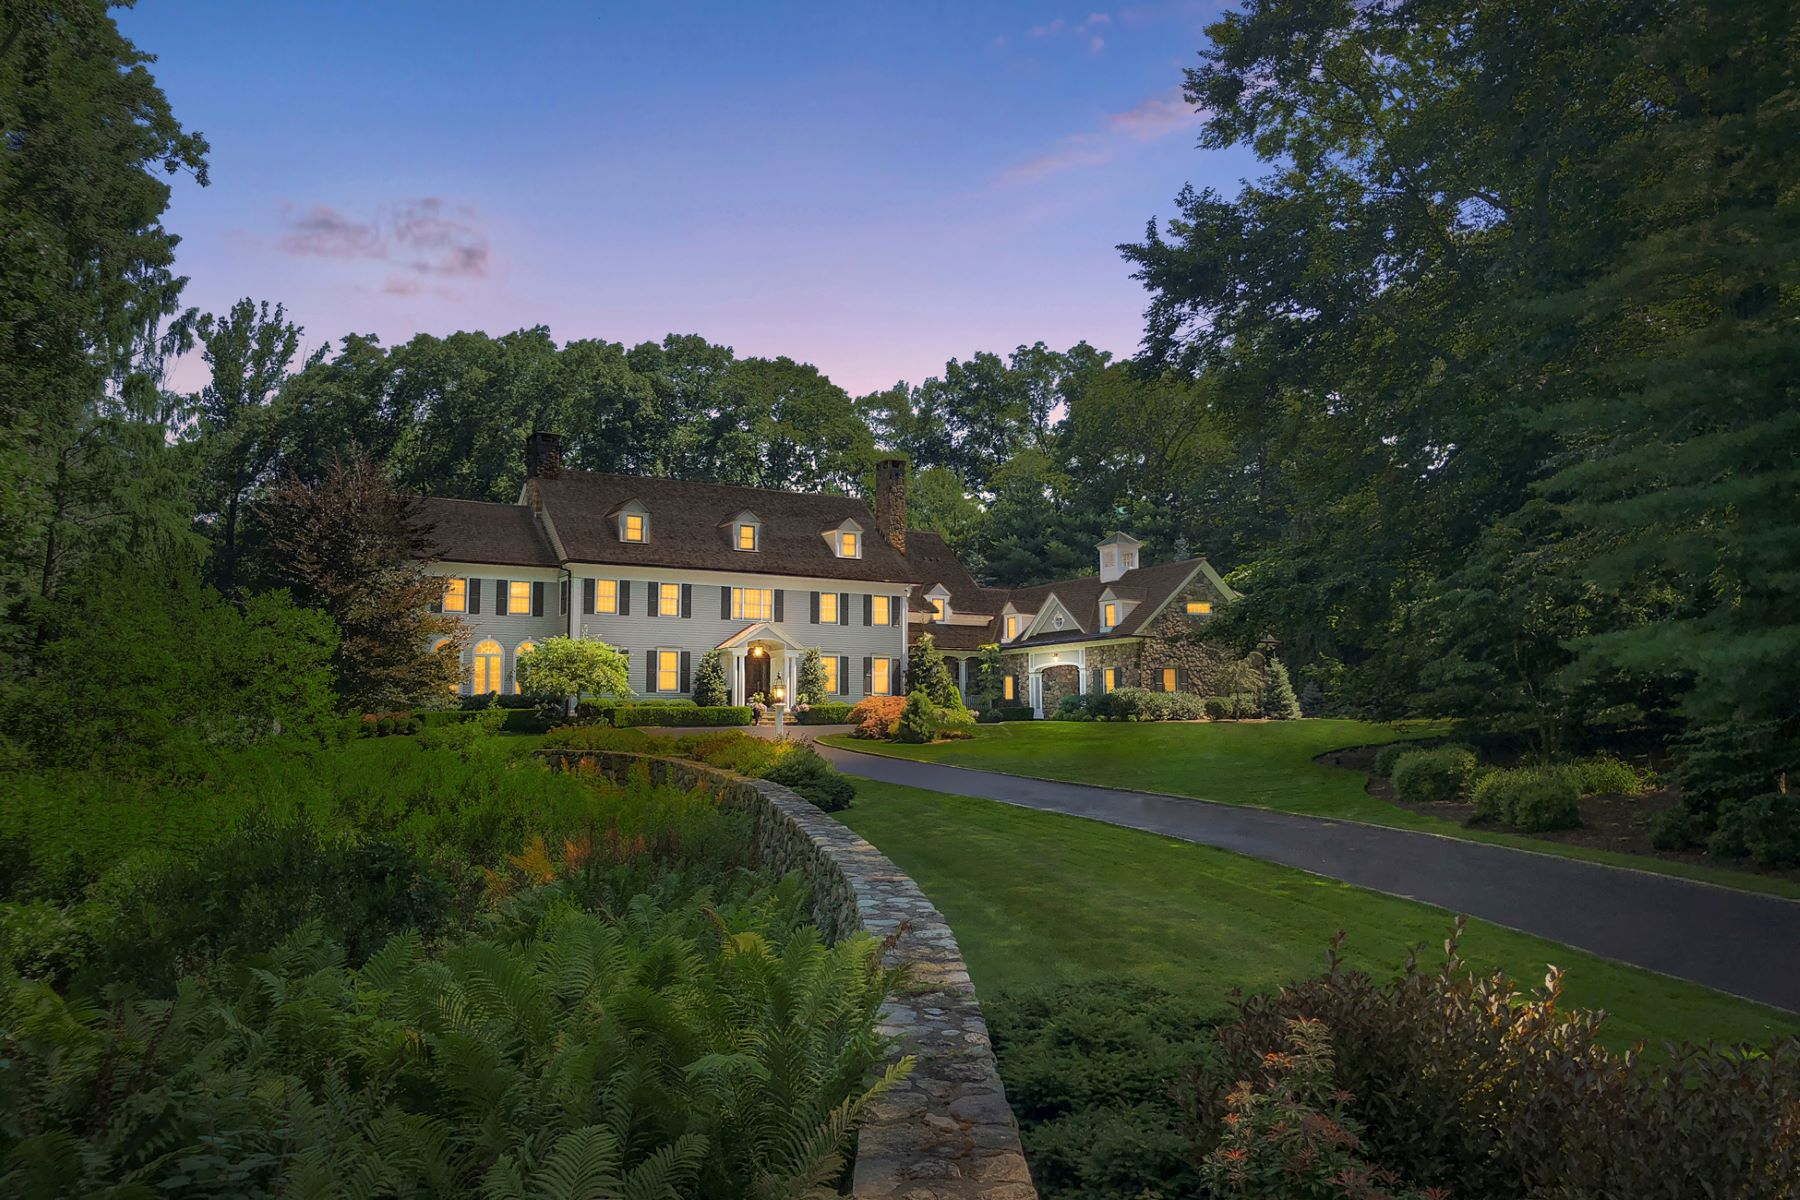 Single Family Homes for Active at Stately Home and Grounds in West Road Enclave 709 West Road New Canaan, Connecticut 06840 United States